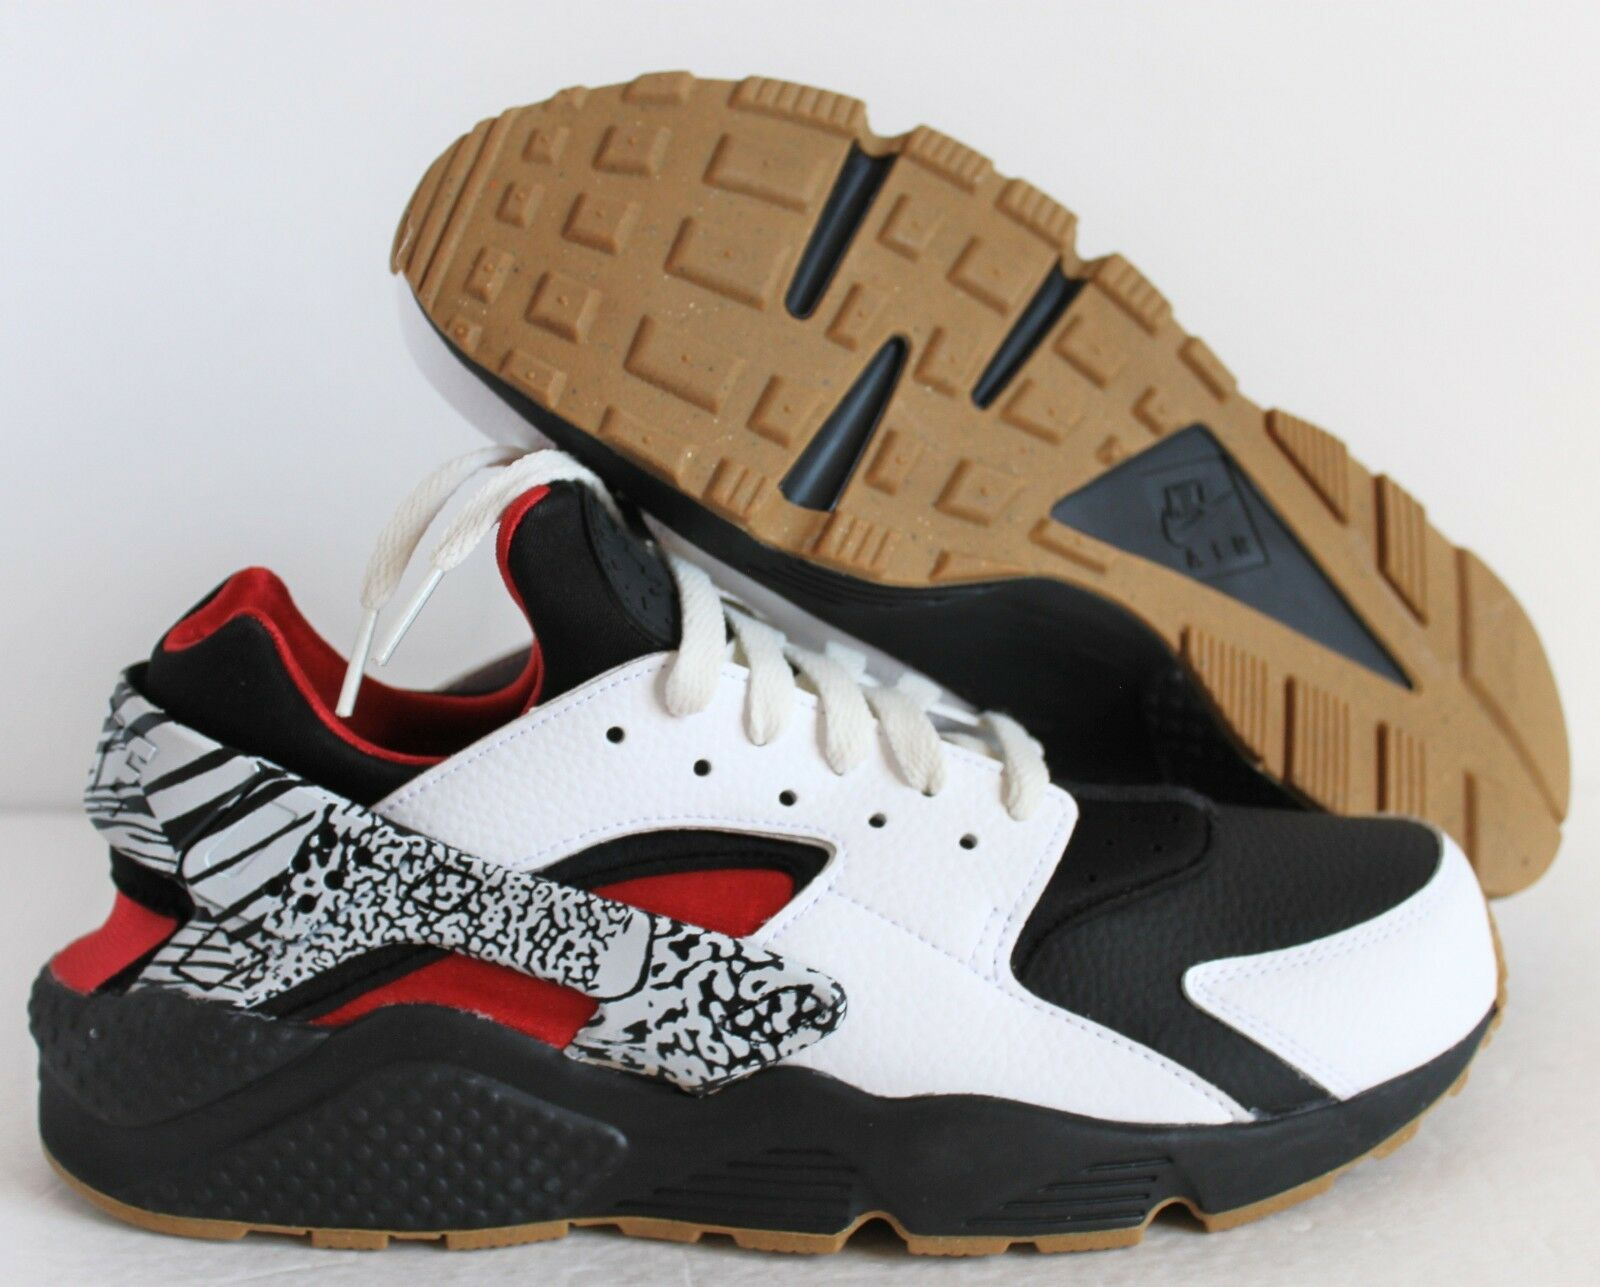 NIKE AIR HUARACHE ID BLACK-WHITE-RED WOMEN SZ 12  MEN SZ 10.5